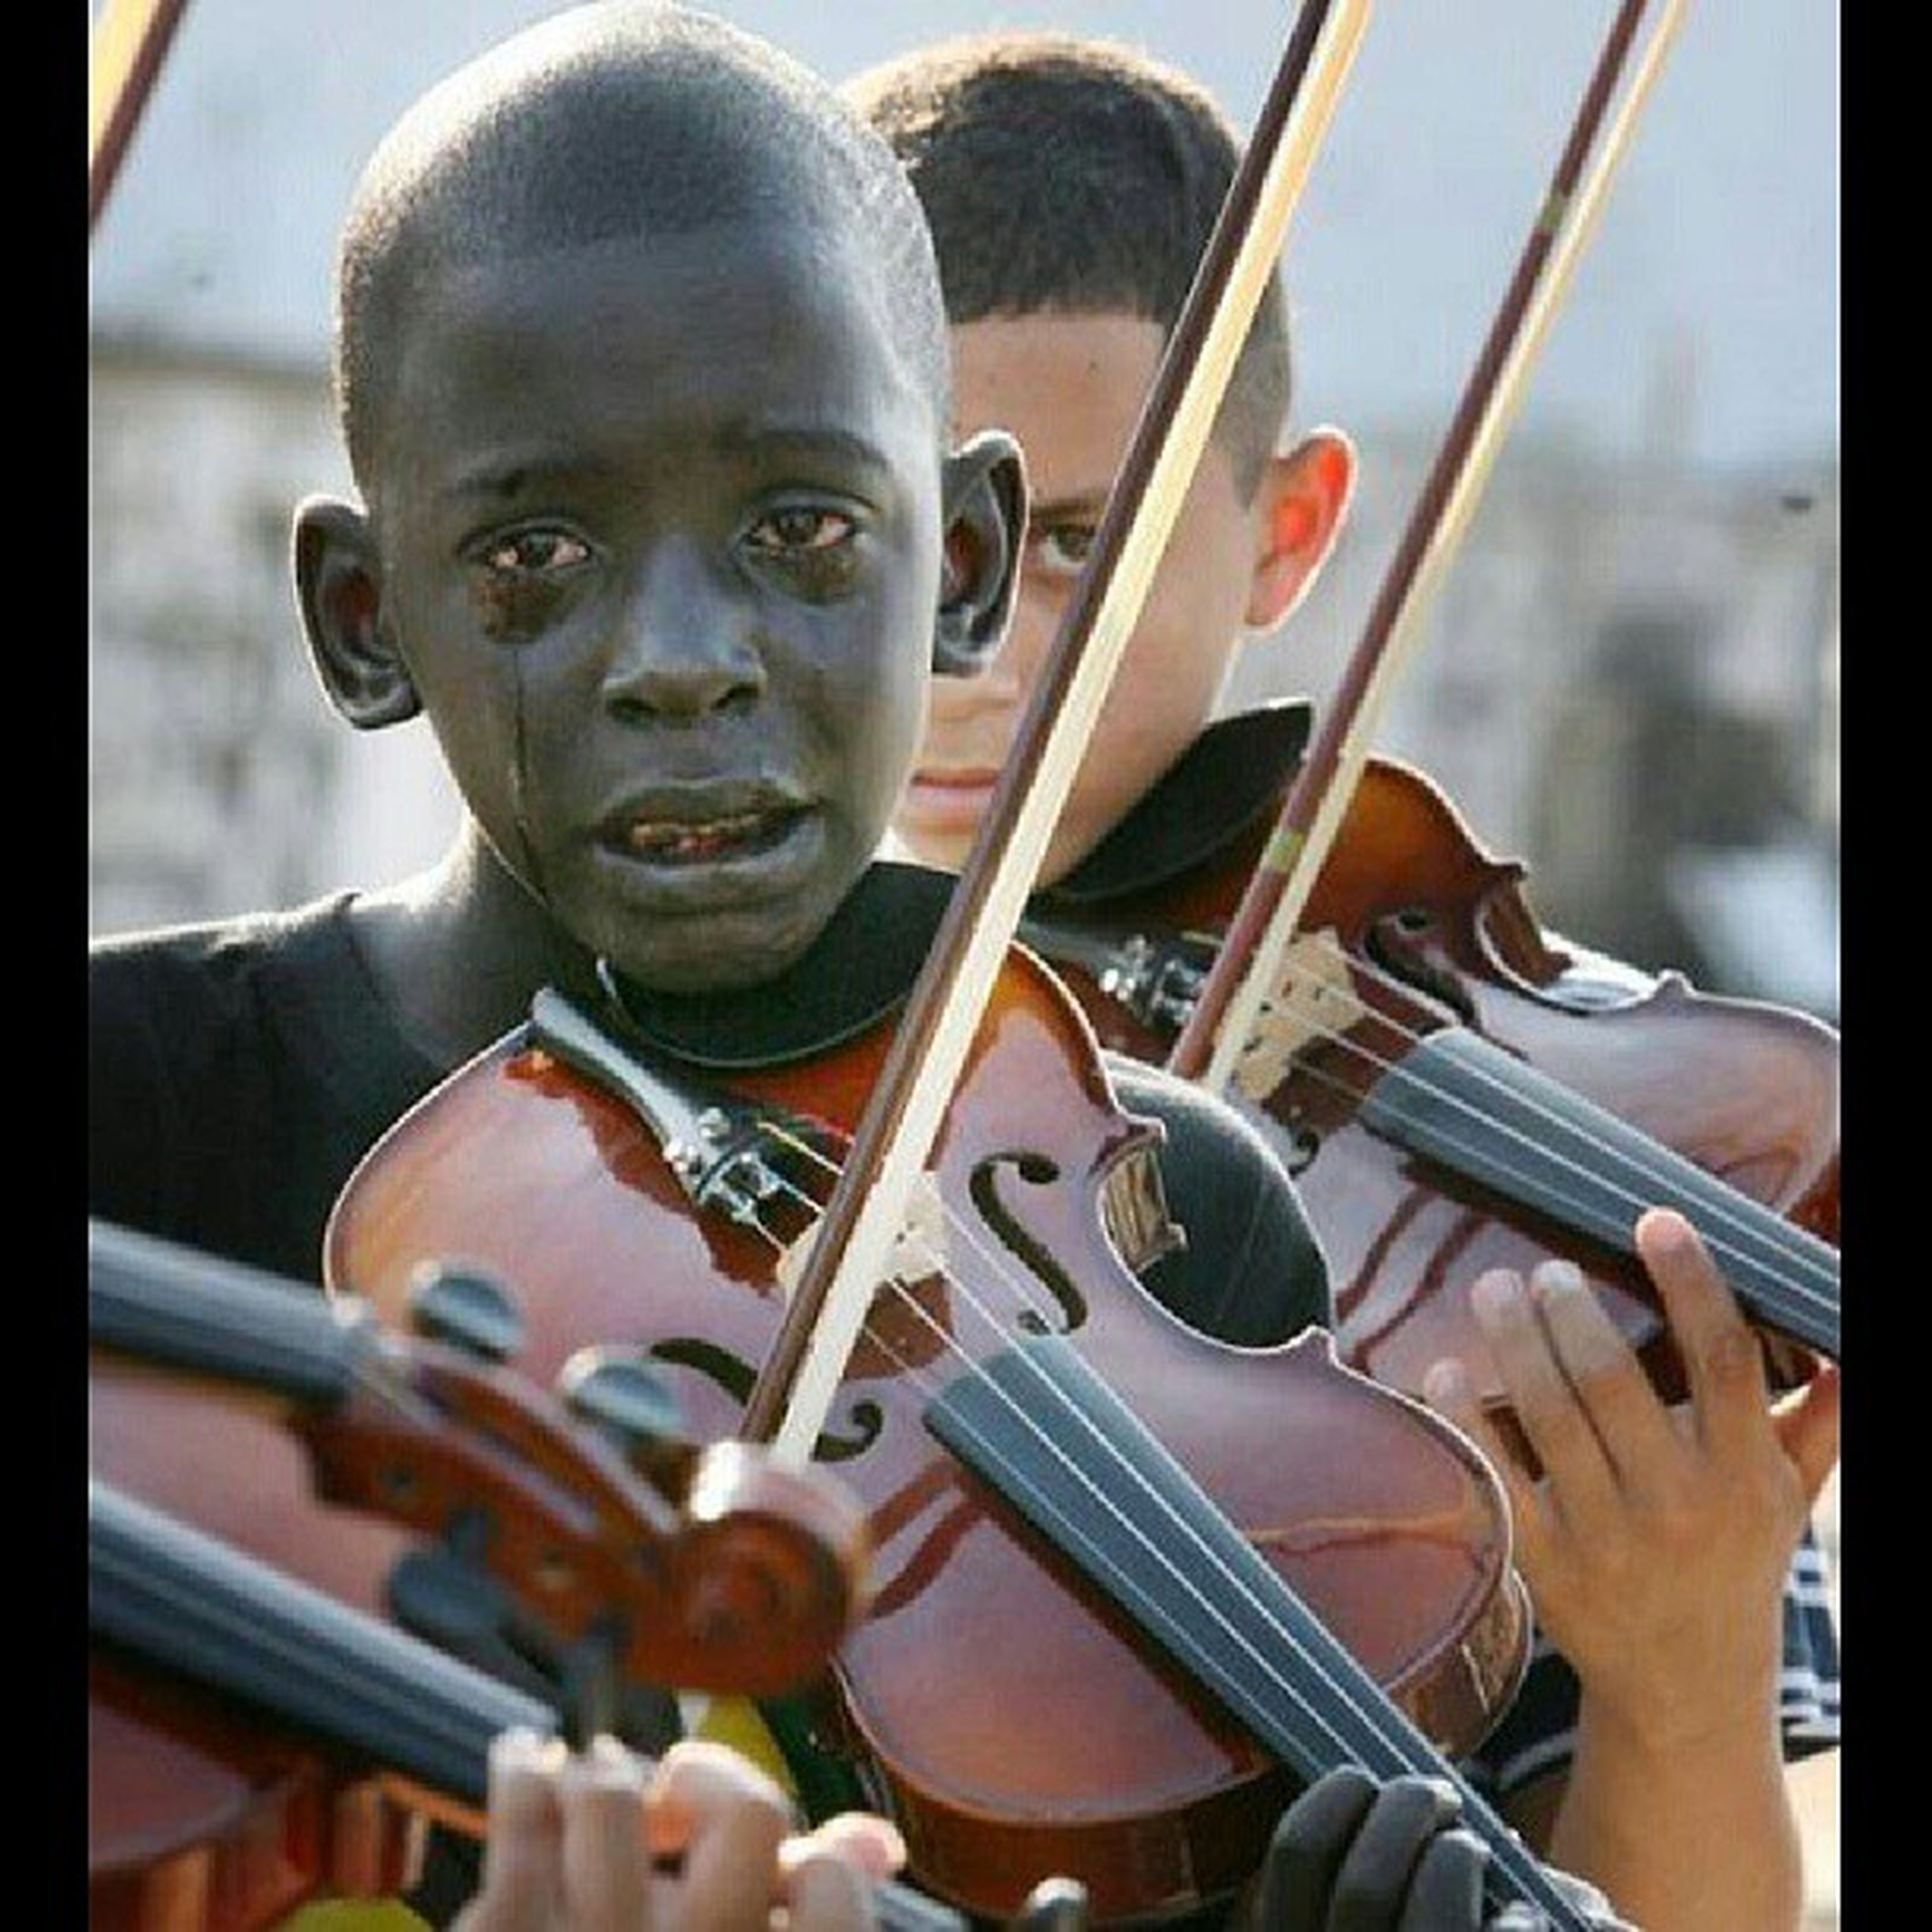 """"""" The boy who cries in the photo is Diego Frazao Torquato, who played the violin in the String Orchestra of the Afro Reggae. Afro Reggae is a non-profit organization that gives kids hope and an escape from their impoverished and crime ridden environments. The occasion was the funeral of his social project coordinator, Evandro João Silva, who was murdered in downtown Rio, Brazil. Diego contracted meningitis at age four, aggravated by pneumonia, and struggled with memory difficulties. He still managed to learn the violin. Diego, born and raised in the slums of Parada de Lucas, dreamed that the violin would take him to see the world. Sadly, shortly after this photo was taken Diego died of leukemia. At Diego's funeral José Júnior, the coordinator of Afro Reggae stated, 'I think the legacy of Diego is hope, it is the willingness to change, to transform'."""" DiegoFrazaoTorquato Restinpeace RestInParadise RIPDiegoFrazaoTorquato"""